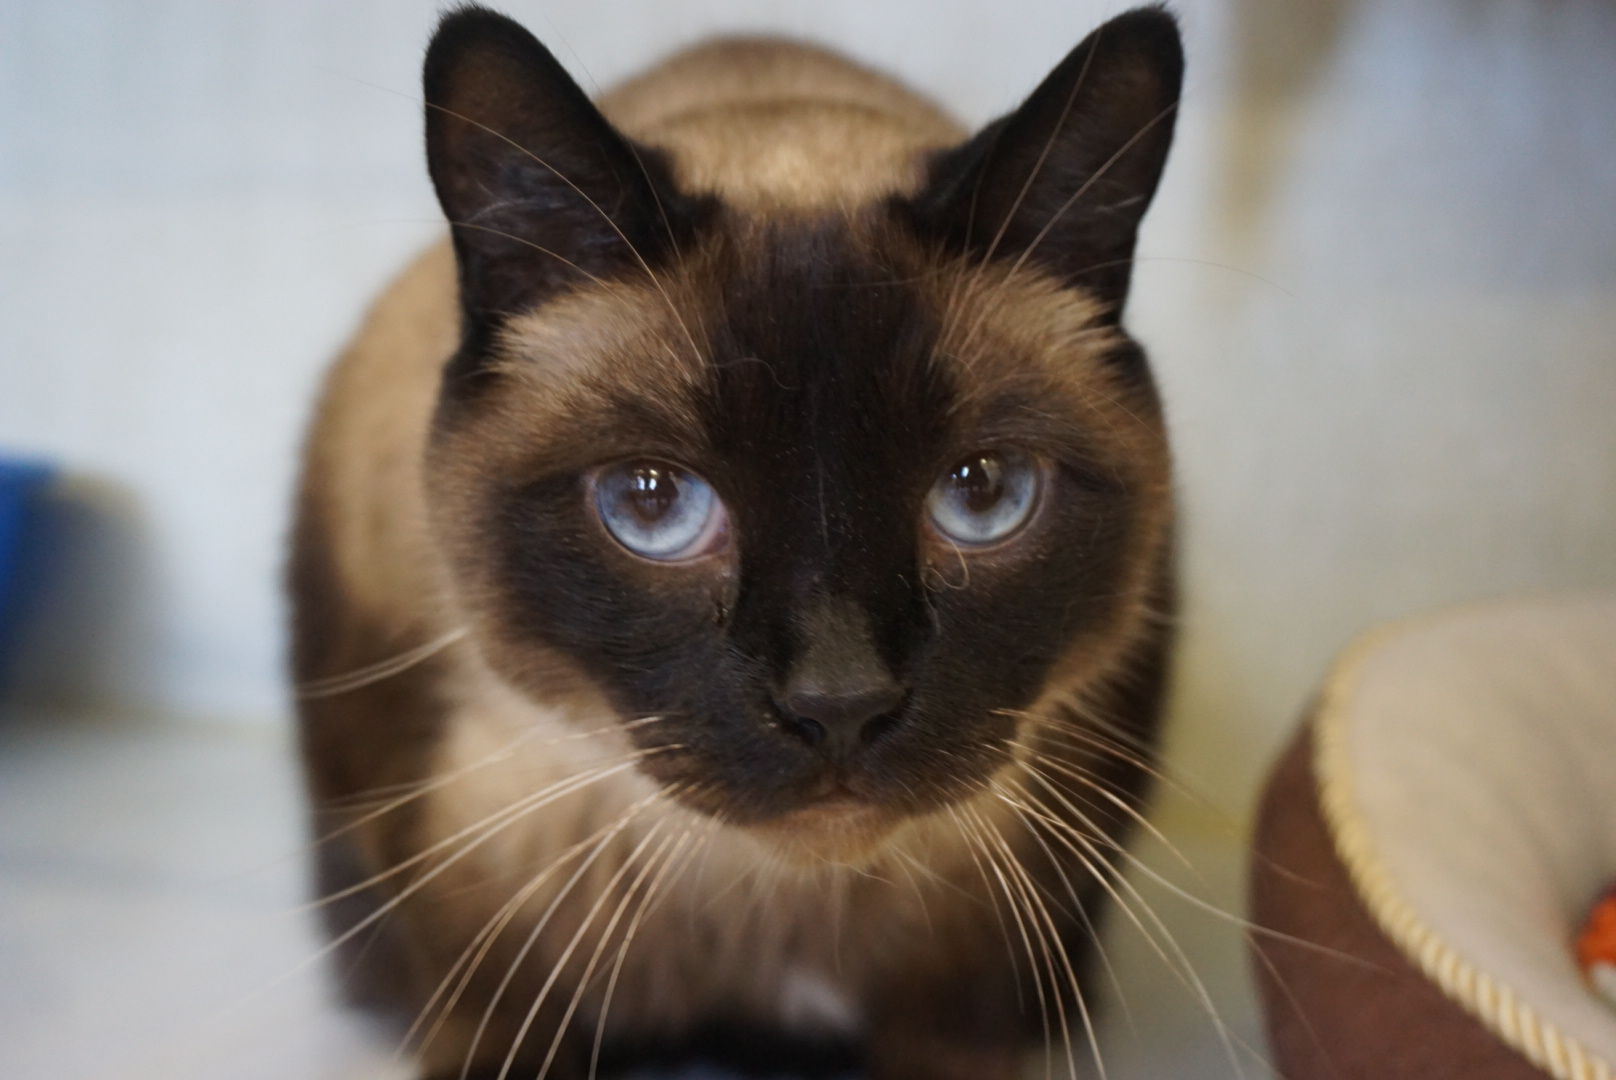 *MUST GO AS A PAIR WITH TC* Siamese Cross Seal Point Male - neutered Date of birth: May 2012 Tbeau and TC are here to double your fun! This pair is the perfect balance of sweetness and personality. Tbeau is more of the strong silent type, he hangs back a little bit but enjoys being petted and brushed and won't say no to a treat! TC is a sweetie with a dash of sass, she will let you know when you're not paying enough attention to her AND when she's had enough! Both like to play and seem especially fond of a feathery string toy. You'll be glad you added this duo to your family! 😽😽 They must be adopted as a pair. Their adoption fee is $180.00. If you would like to meet this dynamic duo, you can visit TC and TBeau at the Rescue Siamese adoption centre at 38 Barberry Road, during regular store hours.